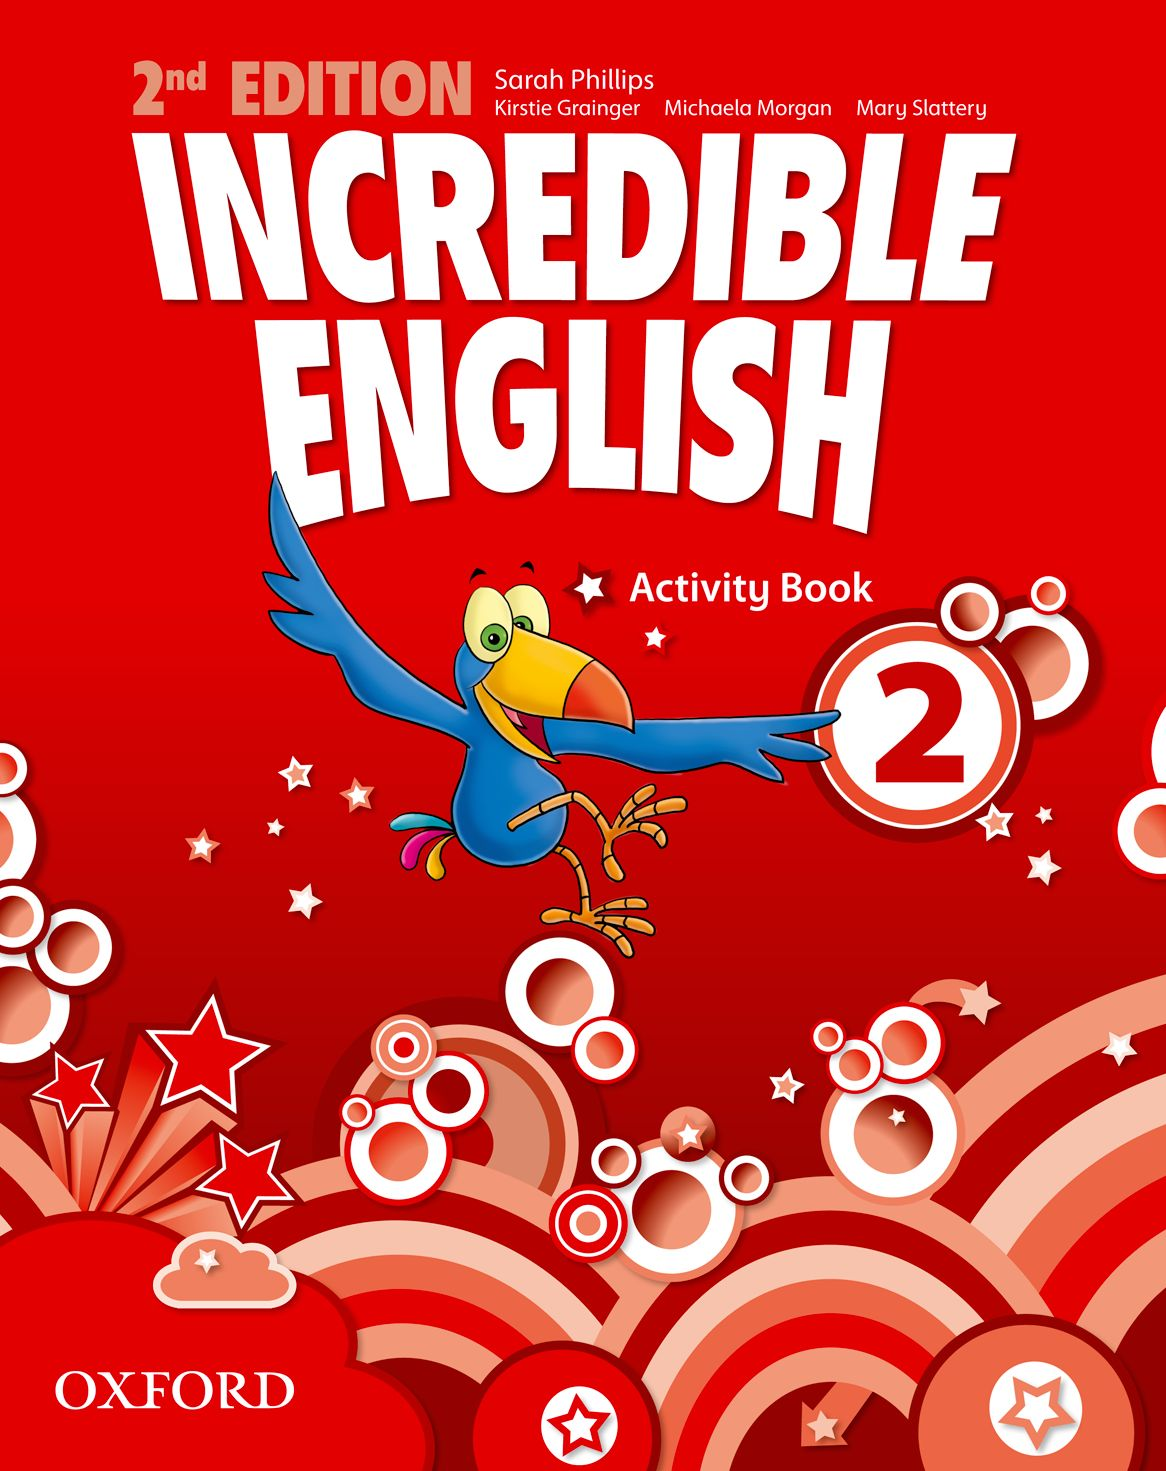 INCREDIBLE ENGLISHLISH 2E 2 AB incredible englishlish 1 cl cd 2